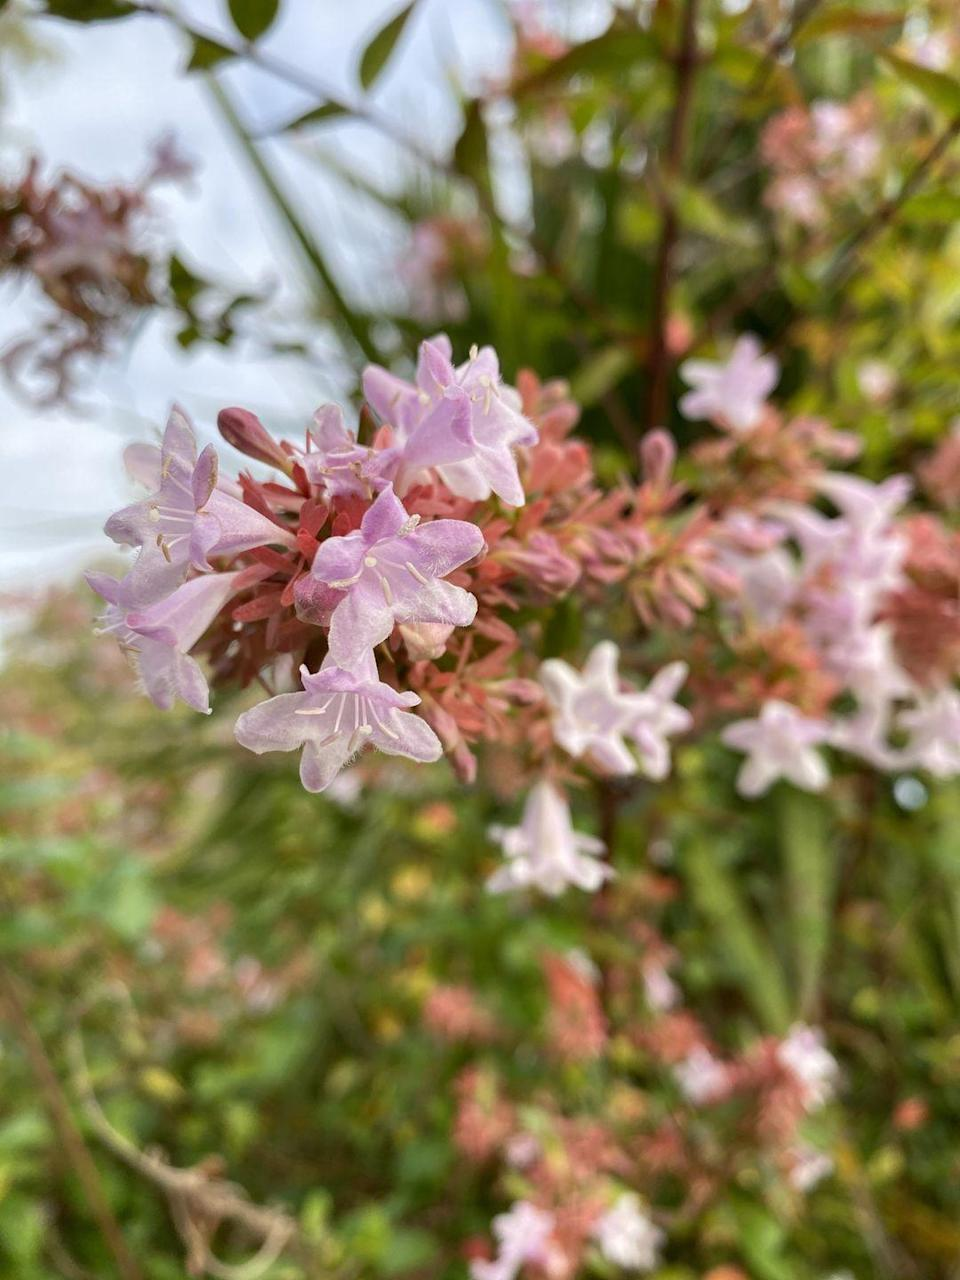 "<p>Abelia have beautiful pink, purple, or peachy-colored bell-shaped flowers that bloom in late spring, spicy-sweet fragrance, colorful fall foliage, and cool seed pods. Plant it where you can enjoy its scent. Abelia likes full sun.</p><p><a class=""link rapid-noclick-resp"" href=""https://www.provenwinners.com/plants/abelia/sunny-anniversary-abelia-x-grandiflora"" rel=""nofollow noopener"" target=""_blank"" data-ylk=""slk:SHOP NOW"">SHOP NOW</a></p>"